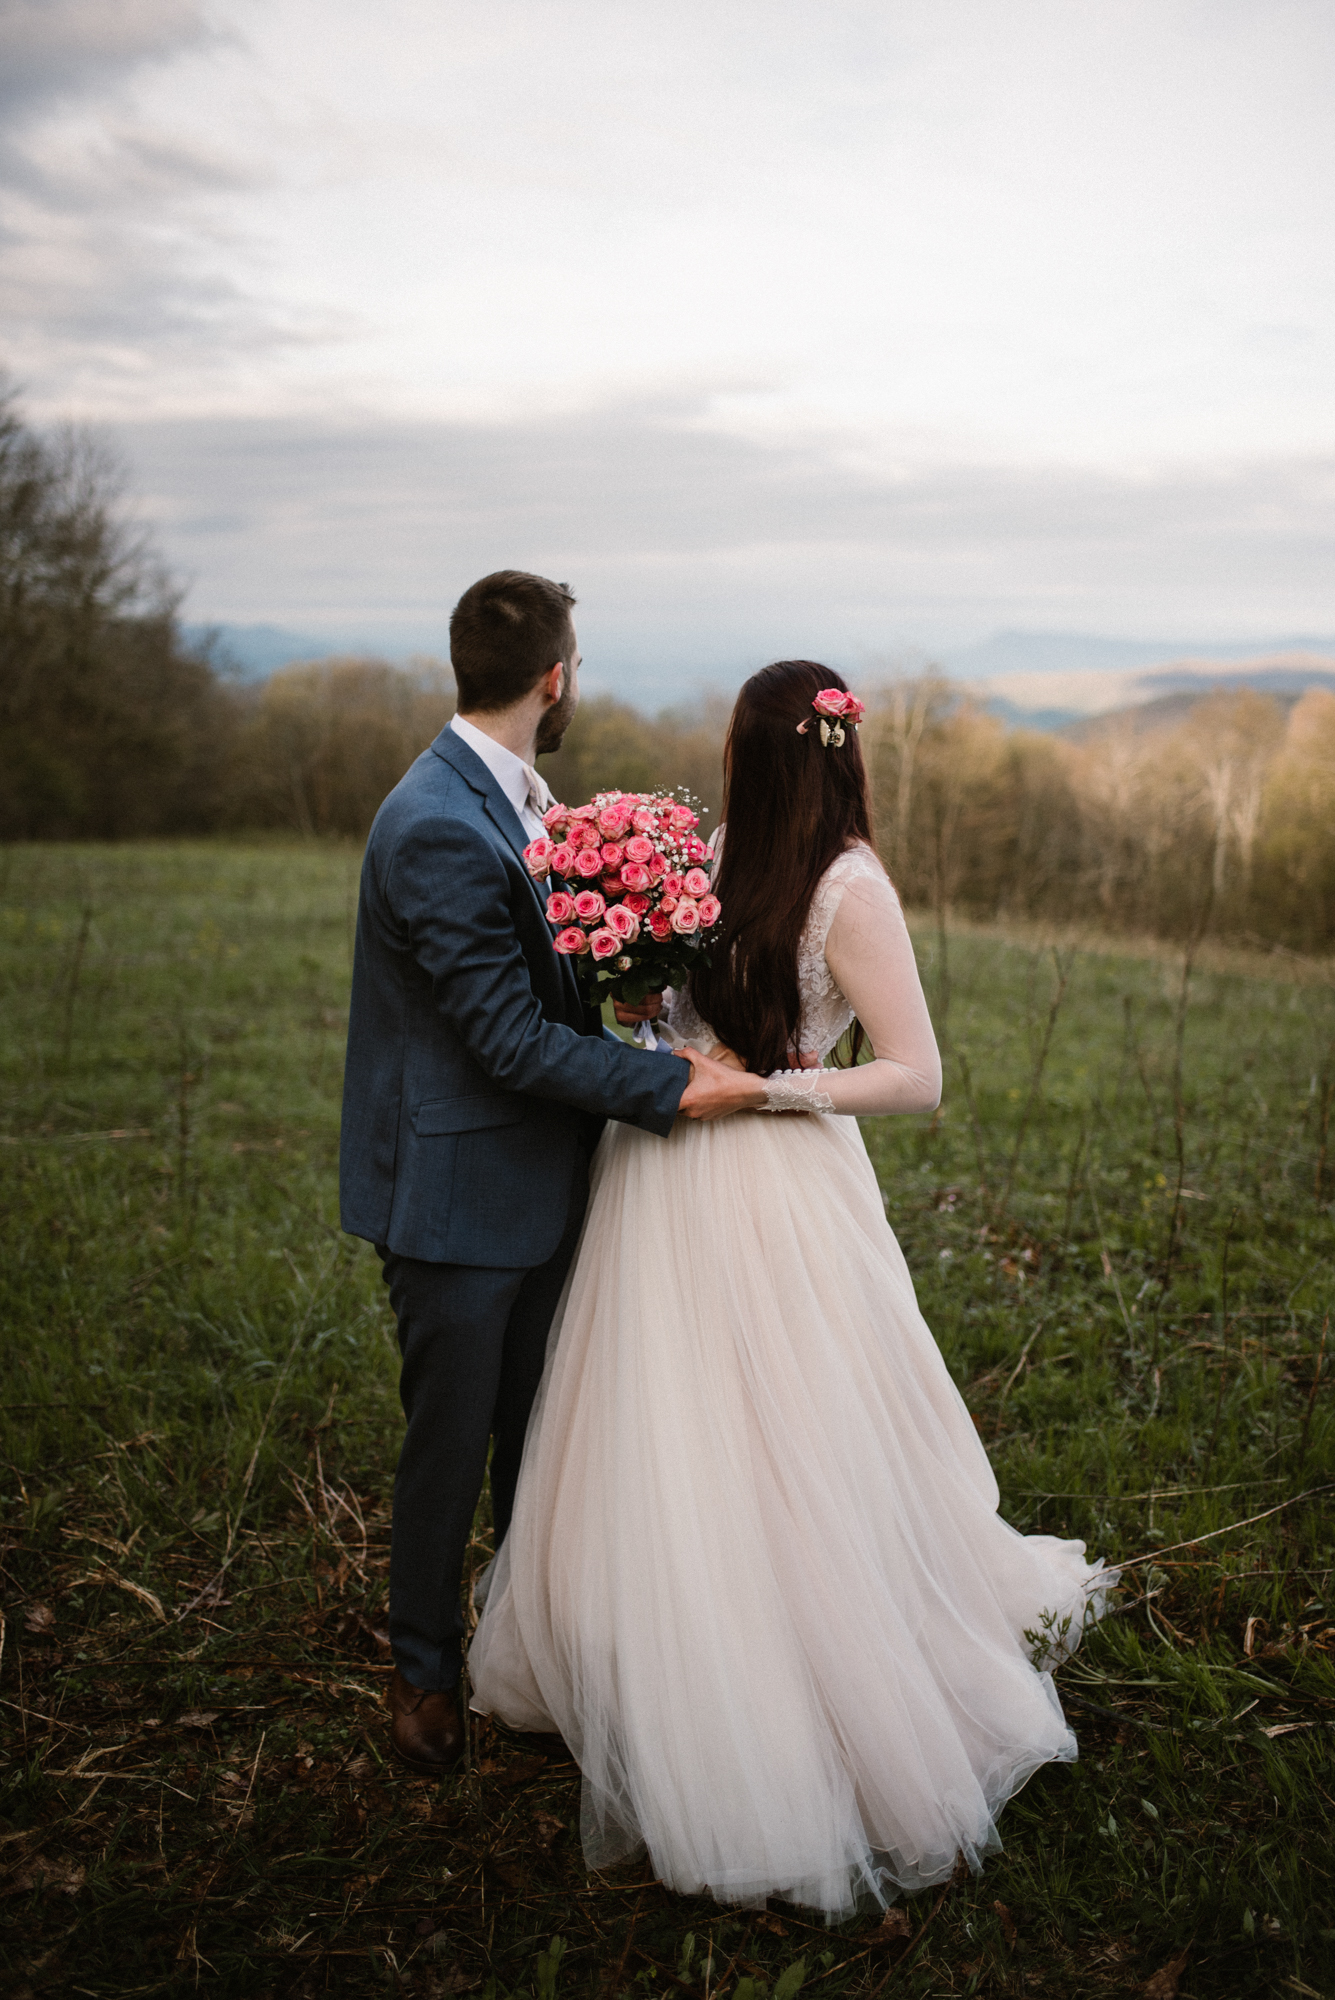 Paula and Andrew - Small Adventurous Wedding in Shenandoah National Park - Blue Ridge Mountain Wedding - White Sails Creative - Mountain Elopement_29.jpg